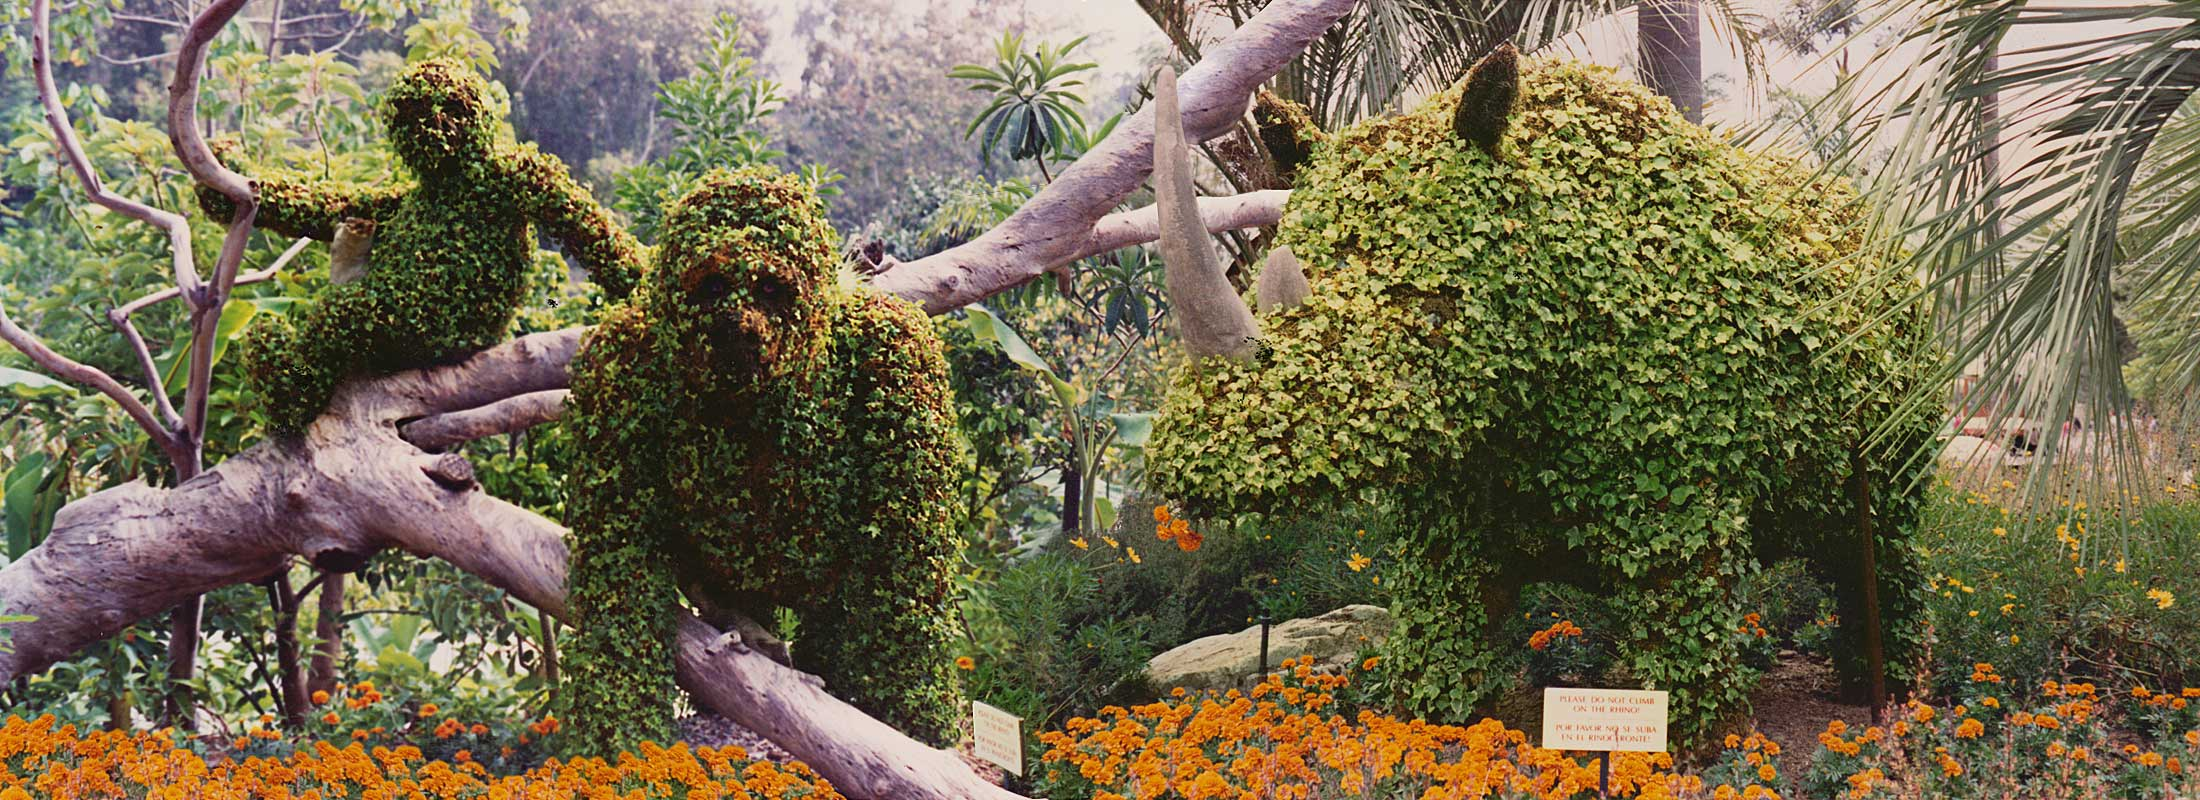 Cliff Finch S Topiary Zoo Making Quality Topiary Frames Since 1981